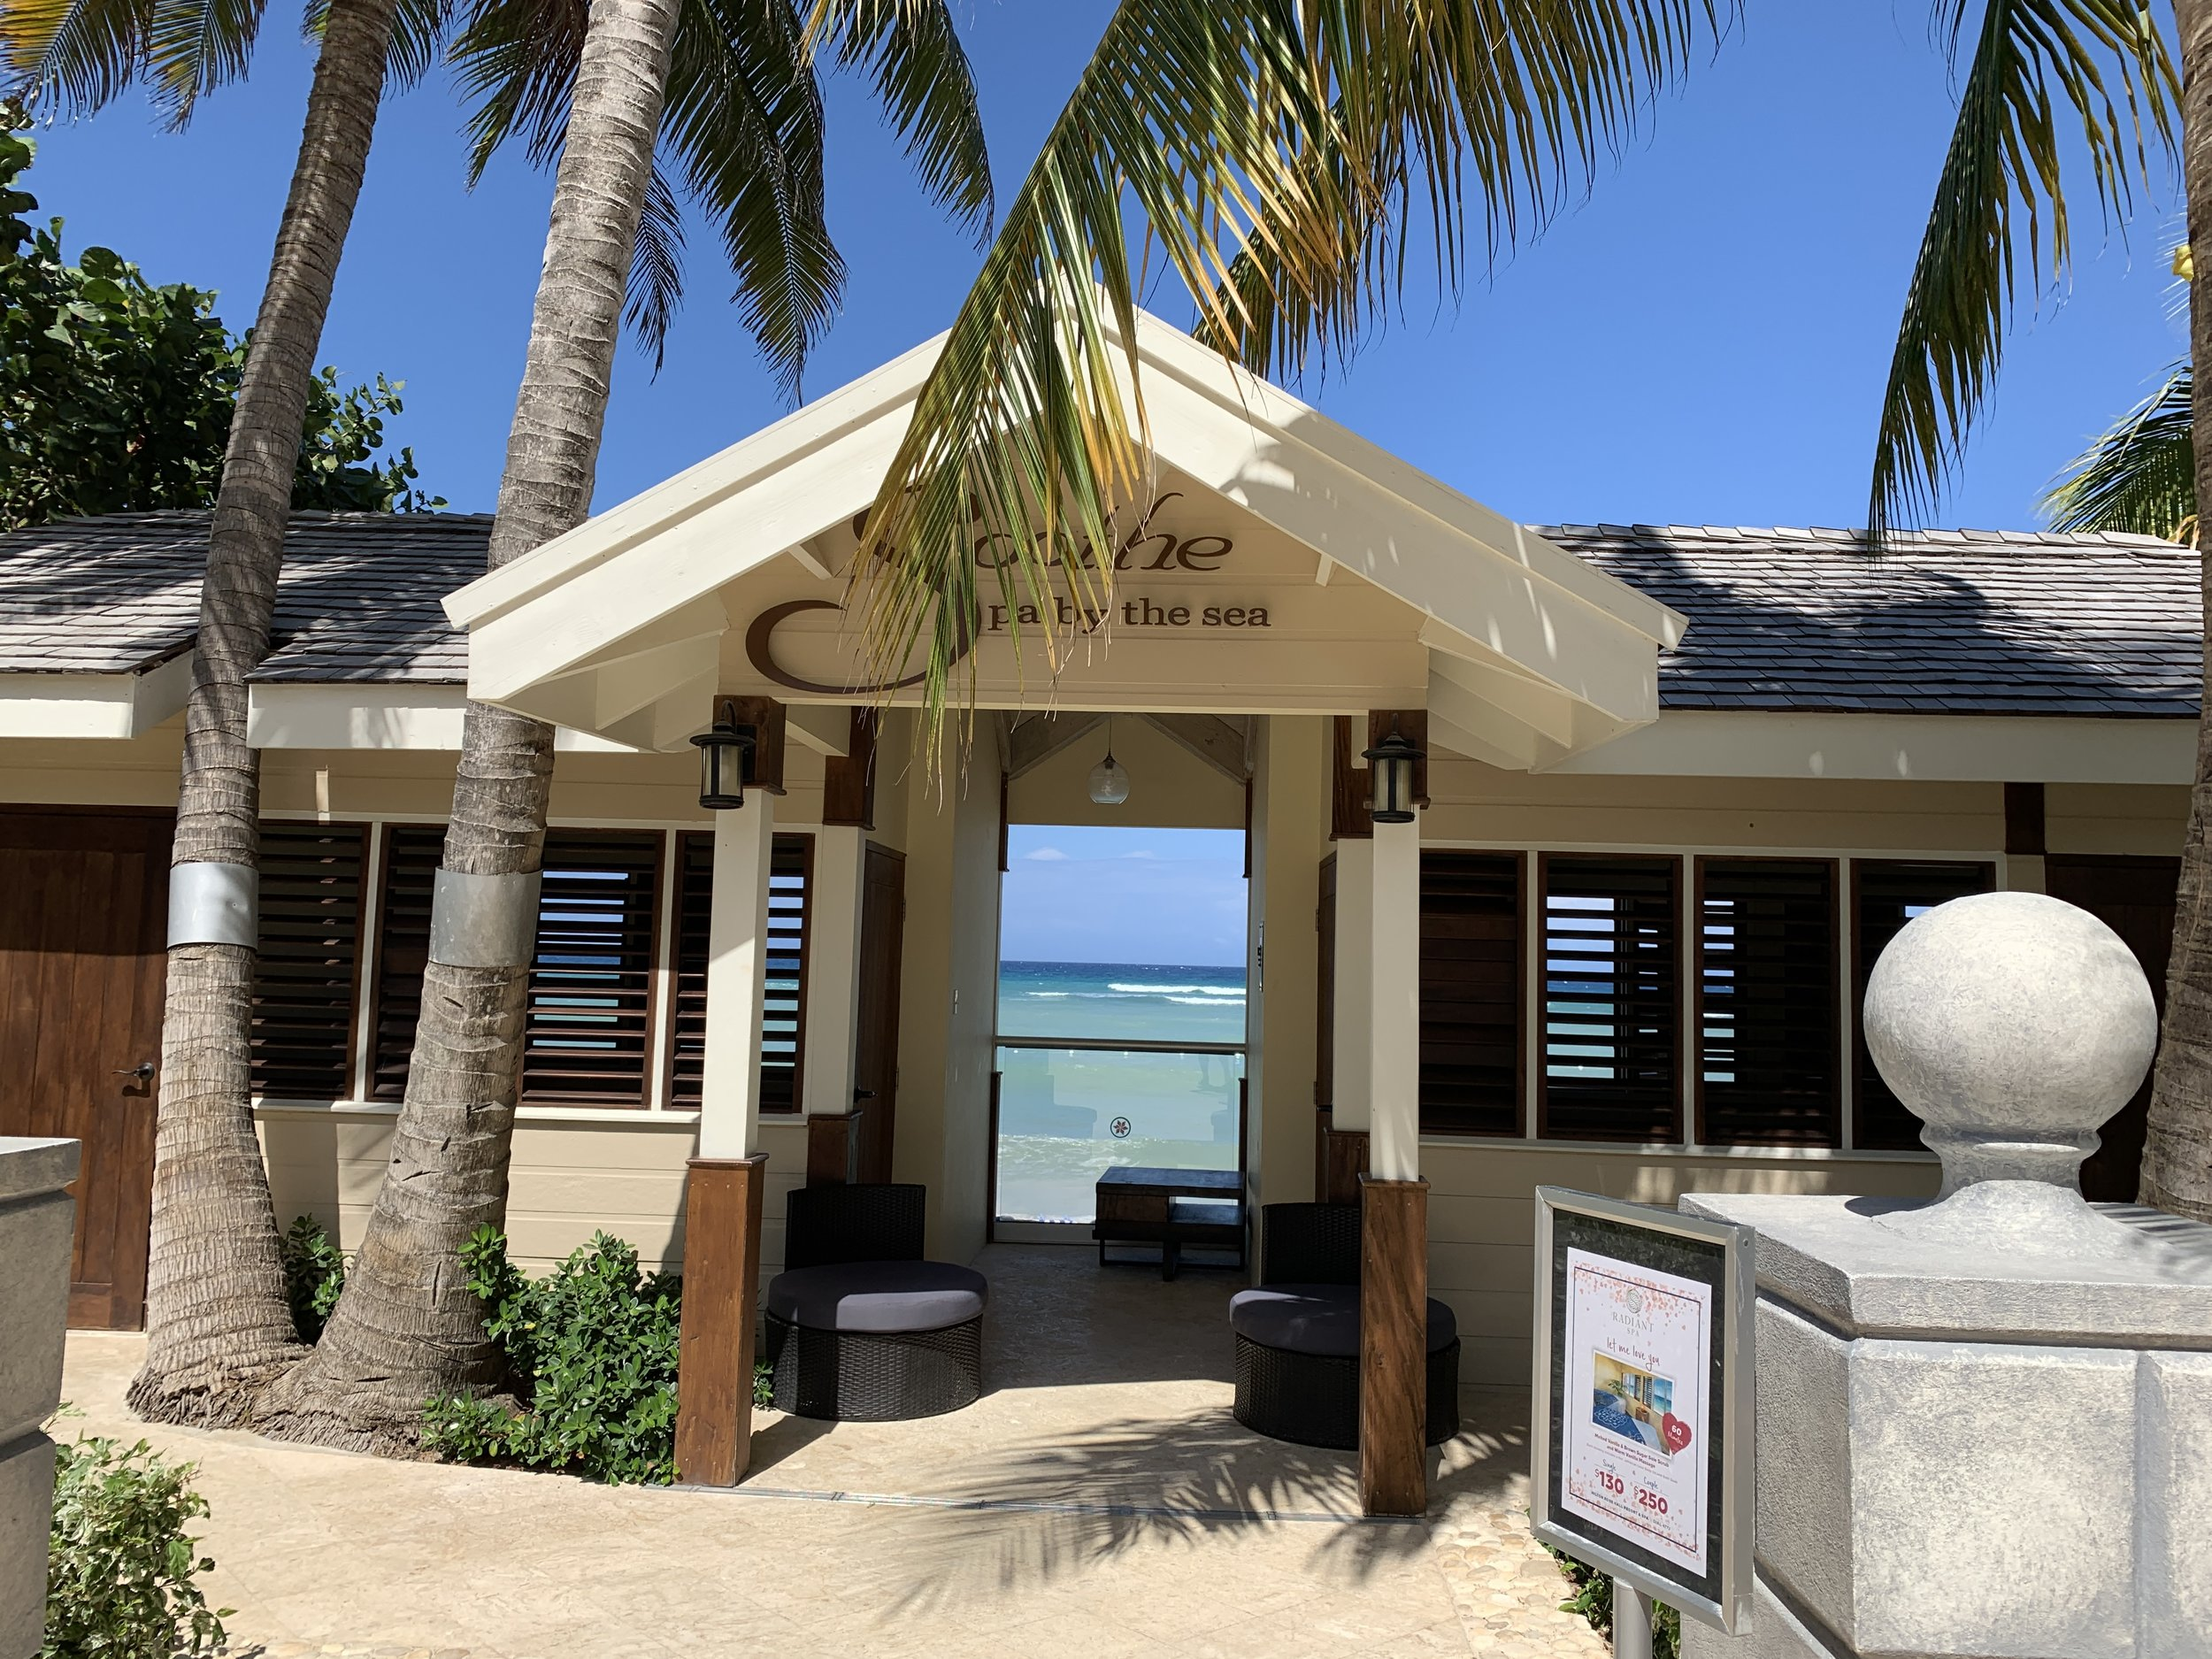 Soothe by the Sea - seems relaxing at a glance but it's right next to the Activities desk, pools, beach loungers, and mangoes live music.